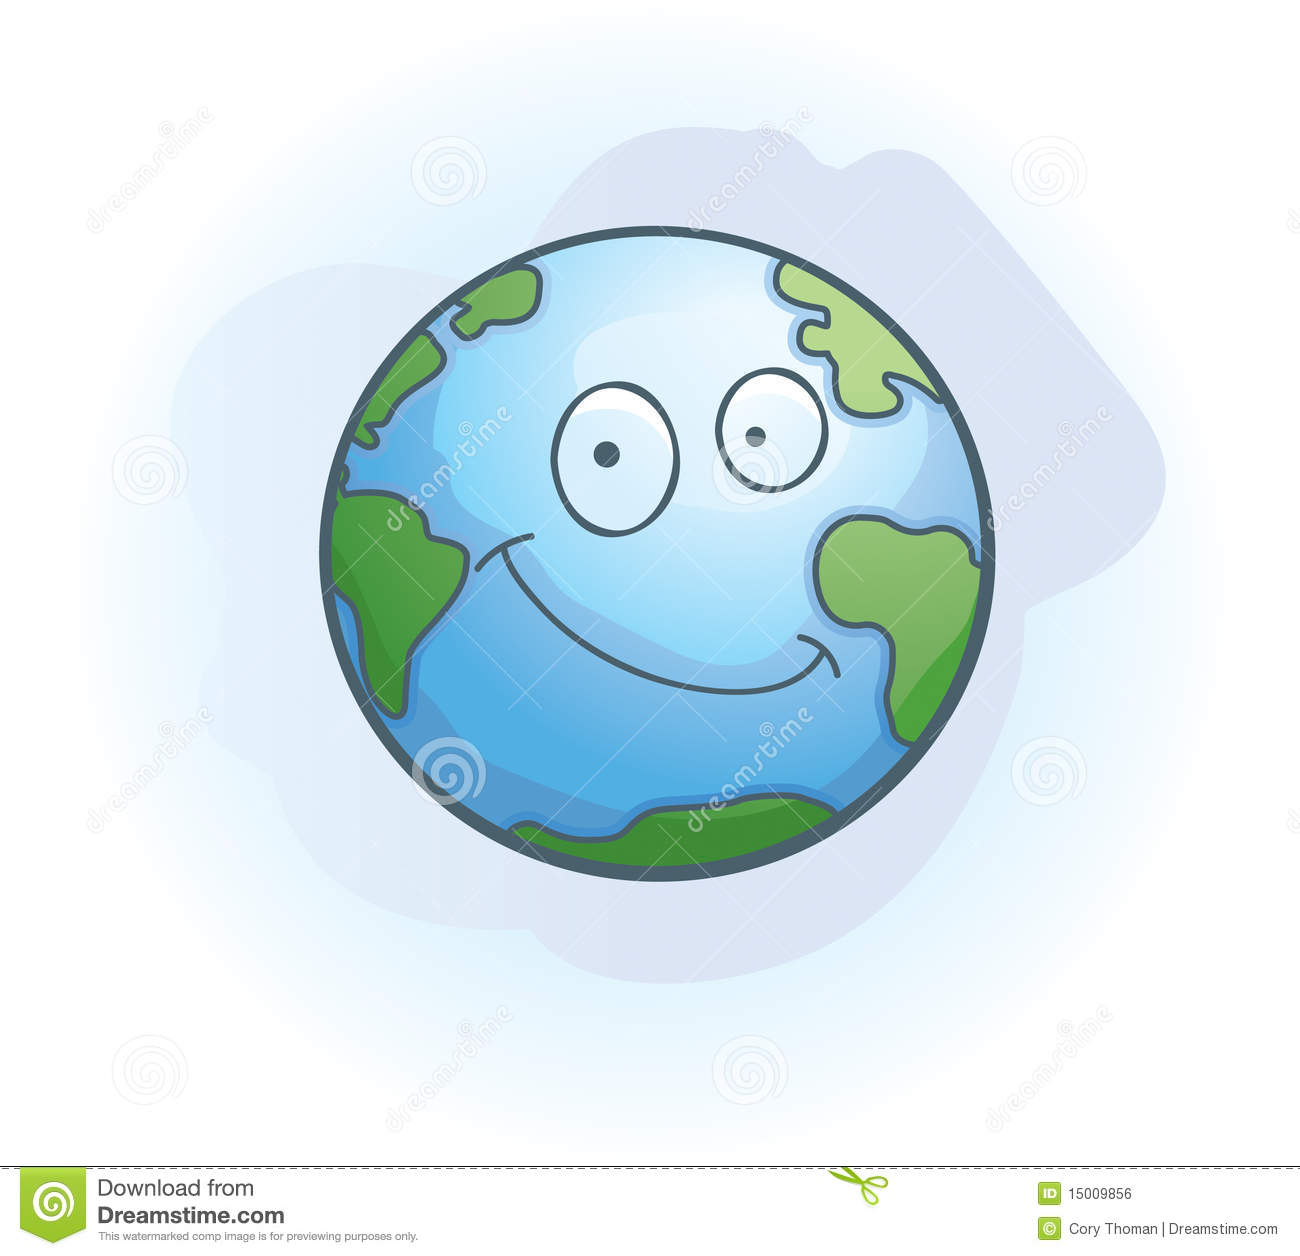 Earth Smiling Royalty Free Stock Image - Image: 15009856